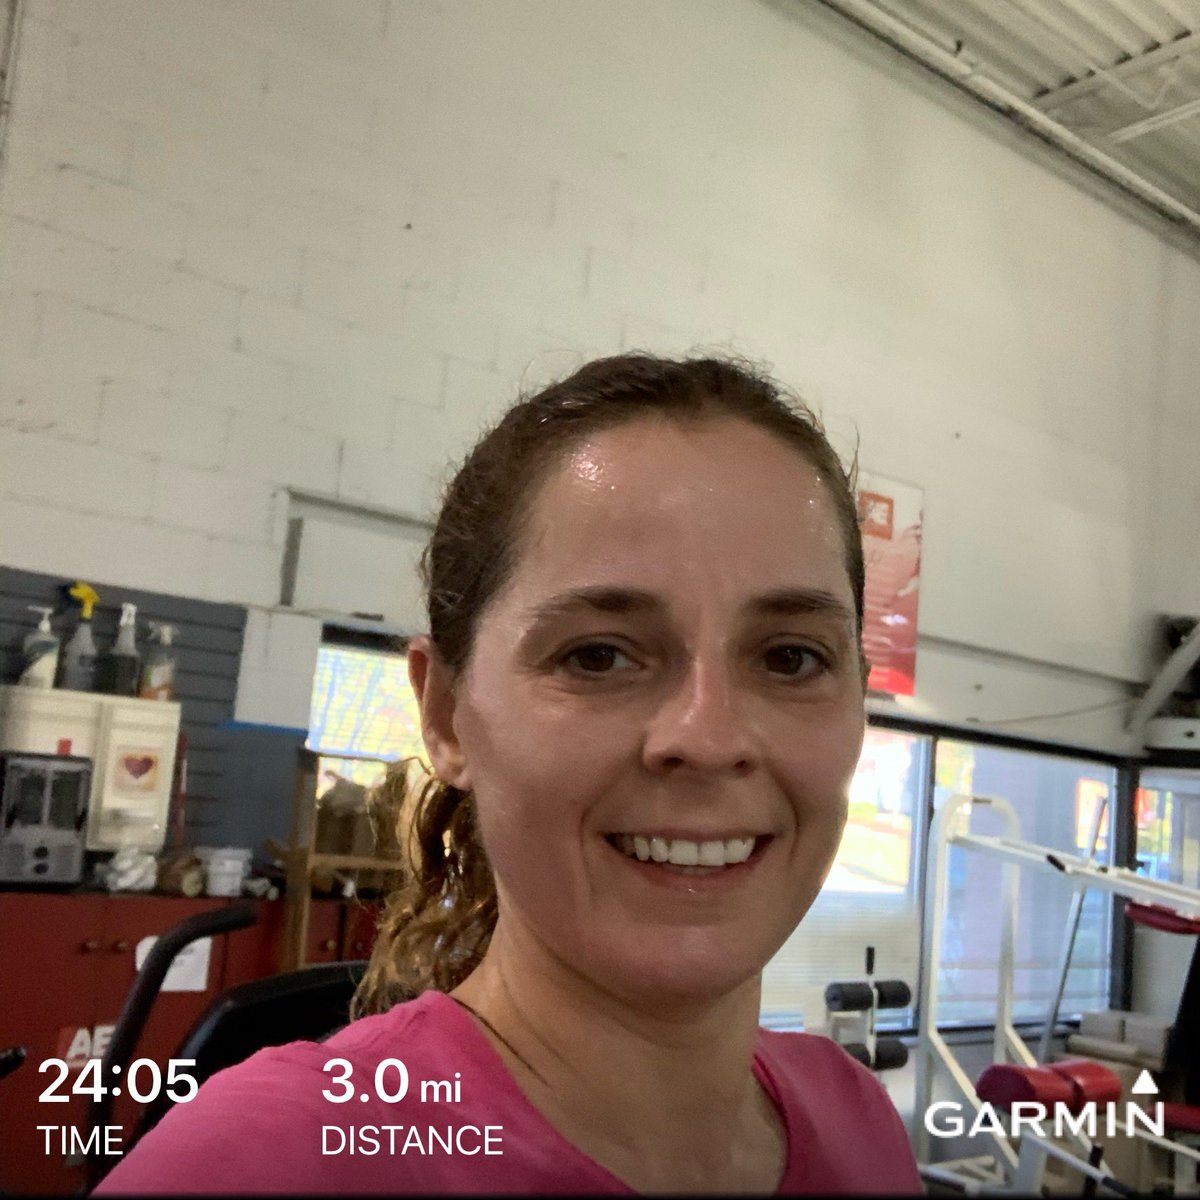 Another athletic start to the day for us  #ellipticalworkout #treadmillworkout and #legday  Follow my blog  http:// apb-tri.com      #ironmantraining #trilife #triharder #triathlete #triathlon #triathlontraining #twhywetri #run #runner #running #marathontraining #kidsworkout<br>http://pic.twitter.com/XuHVE7Wgfj